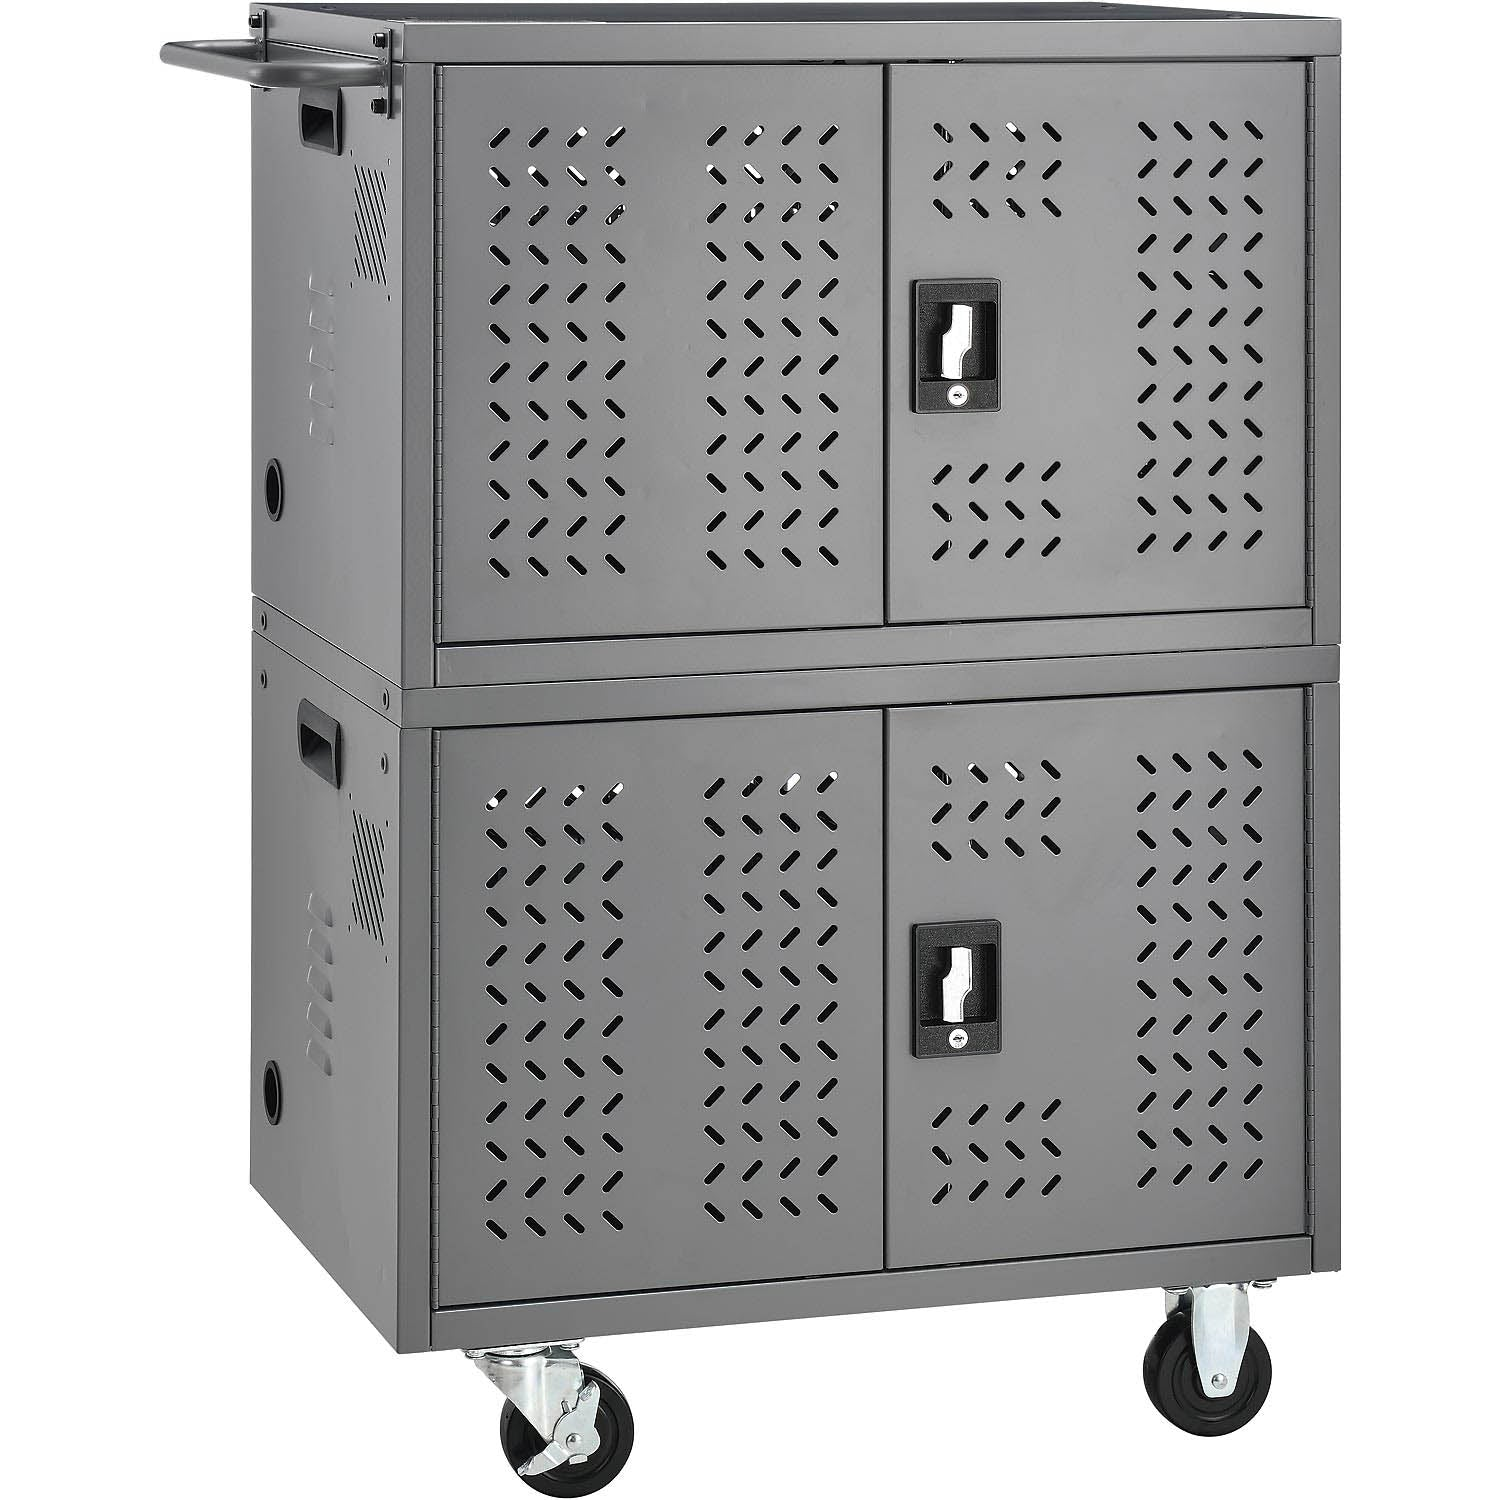 Charging cart with durable, all steel constructions